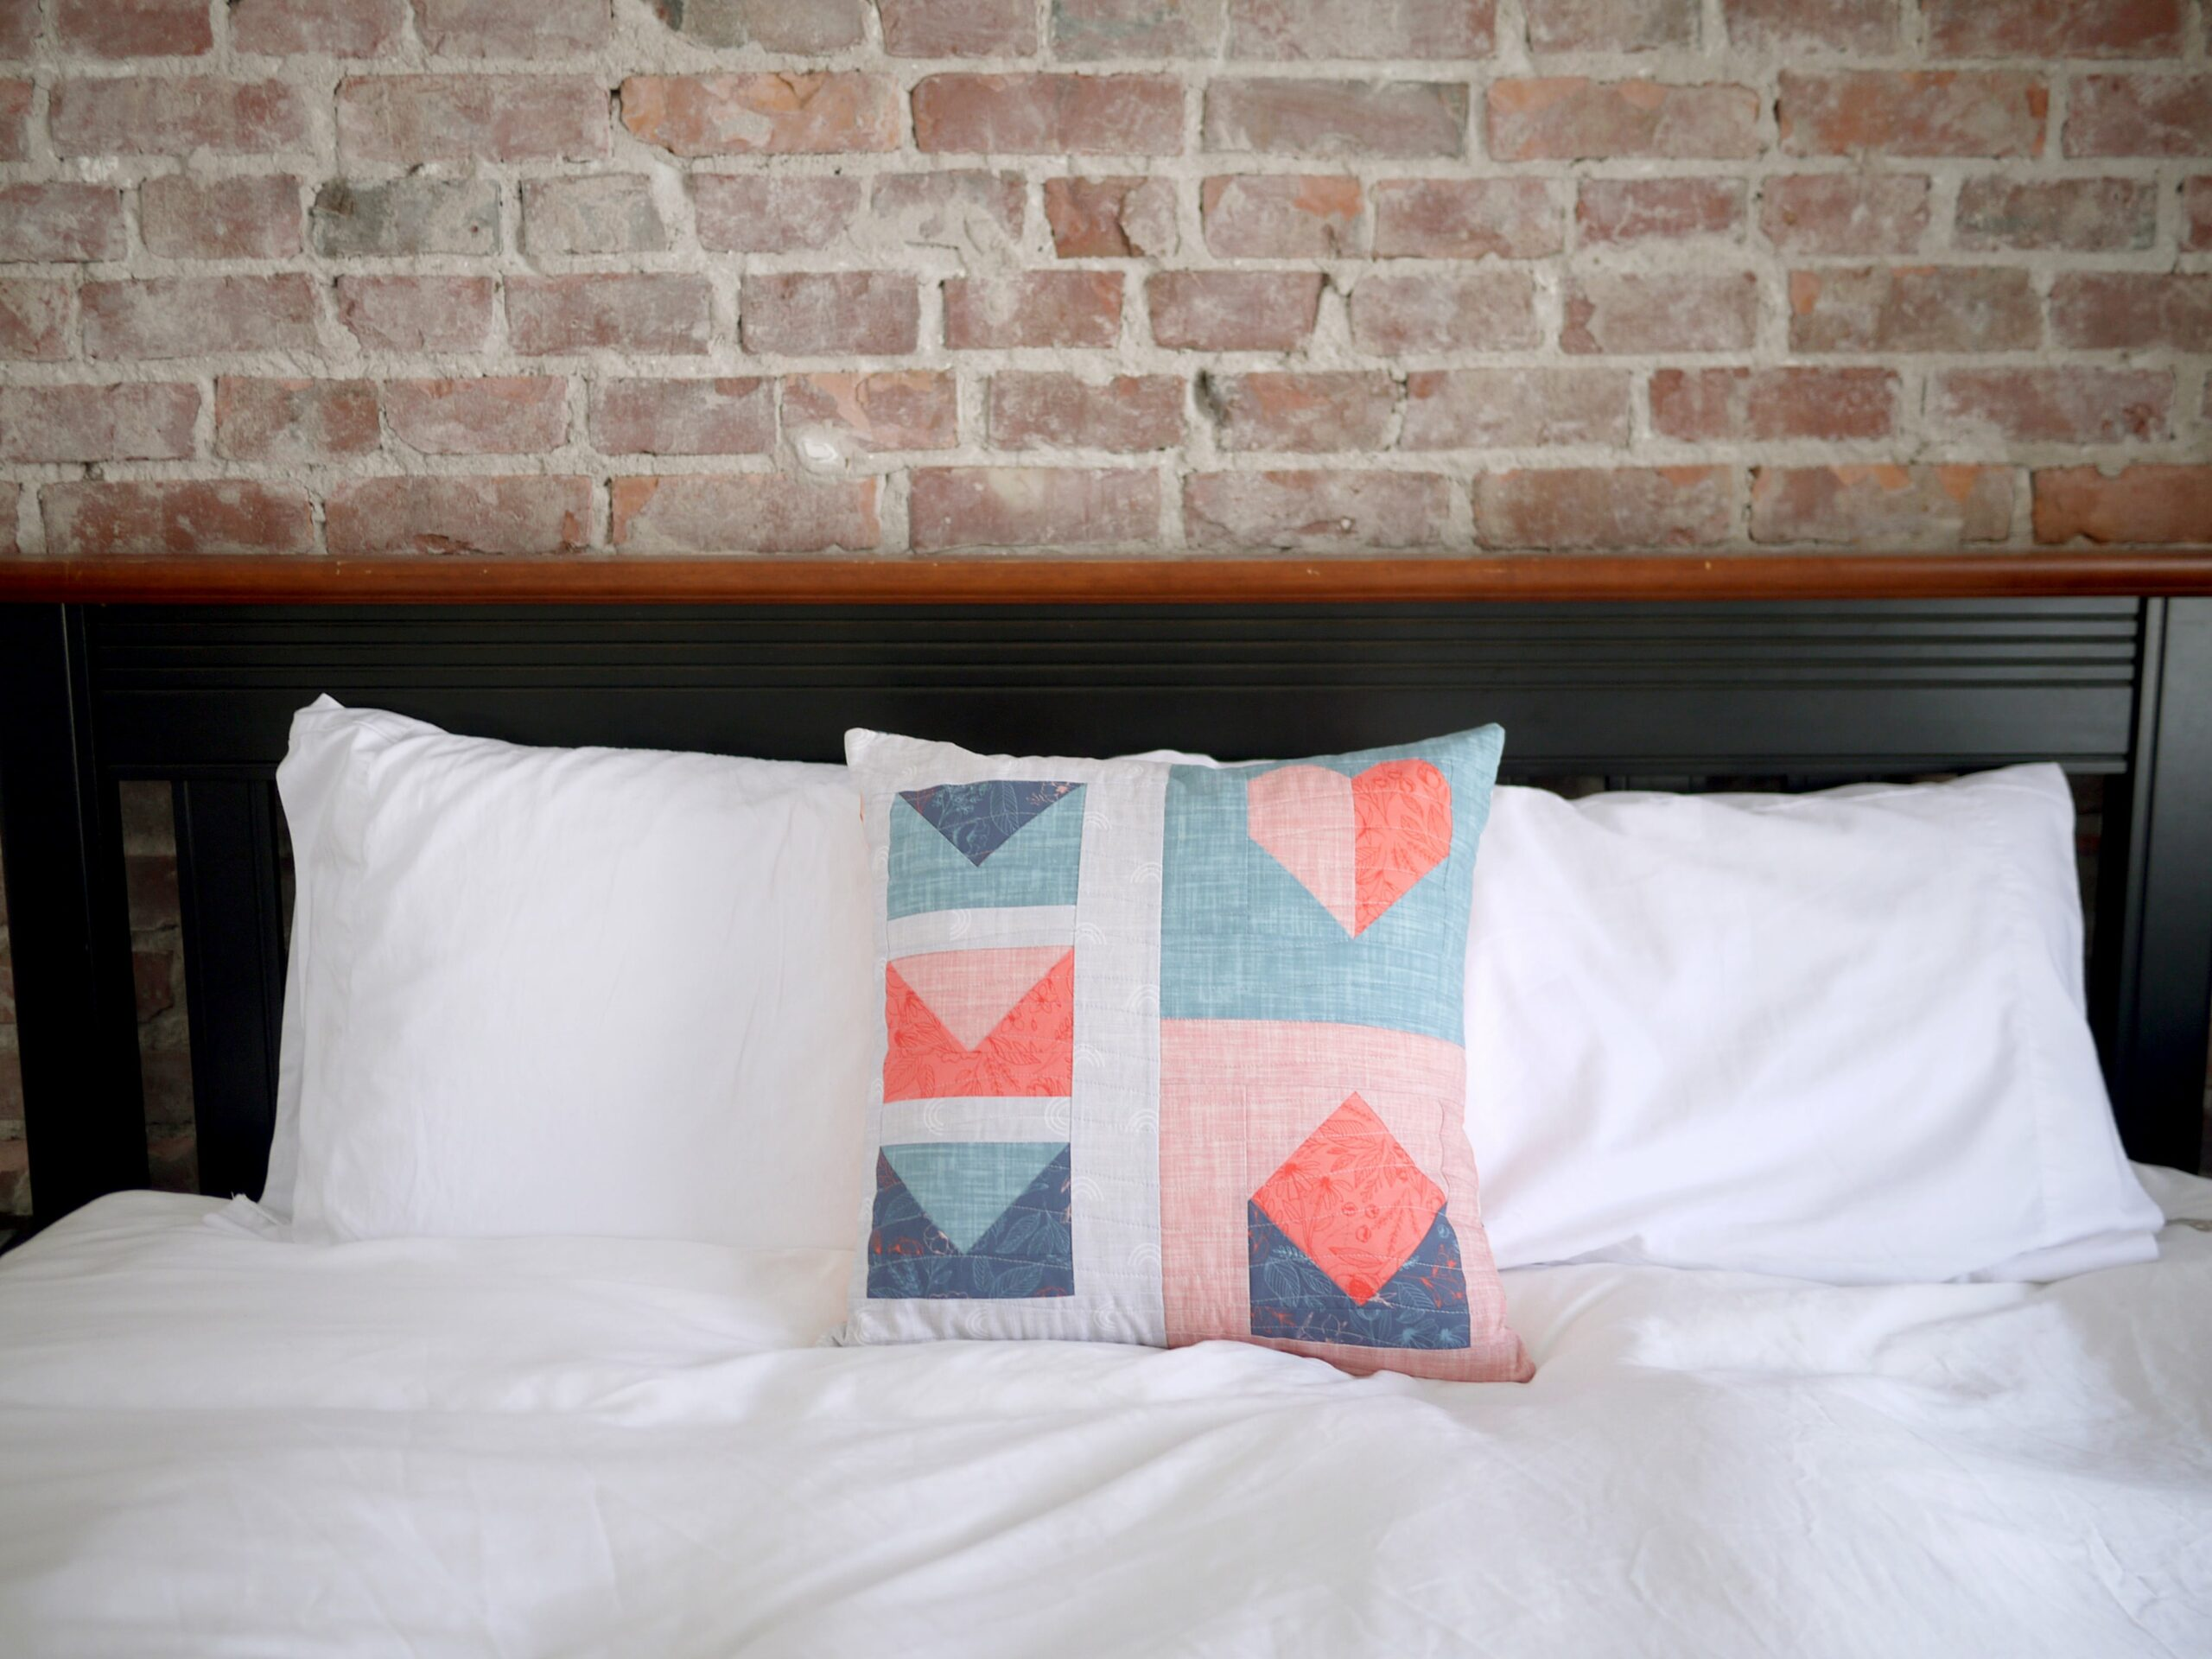 Pillow made with quilt blocks sitting on bed